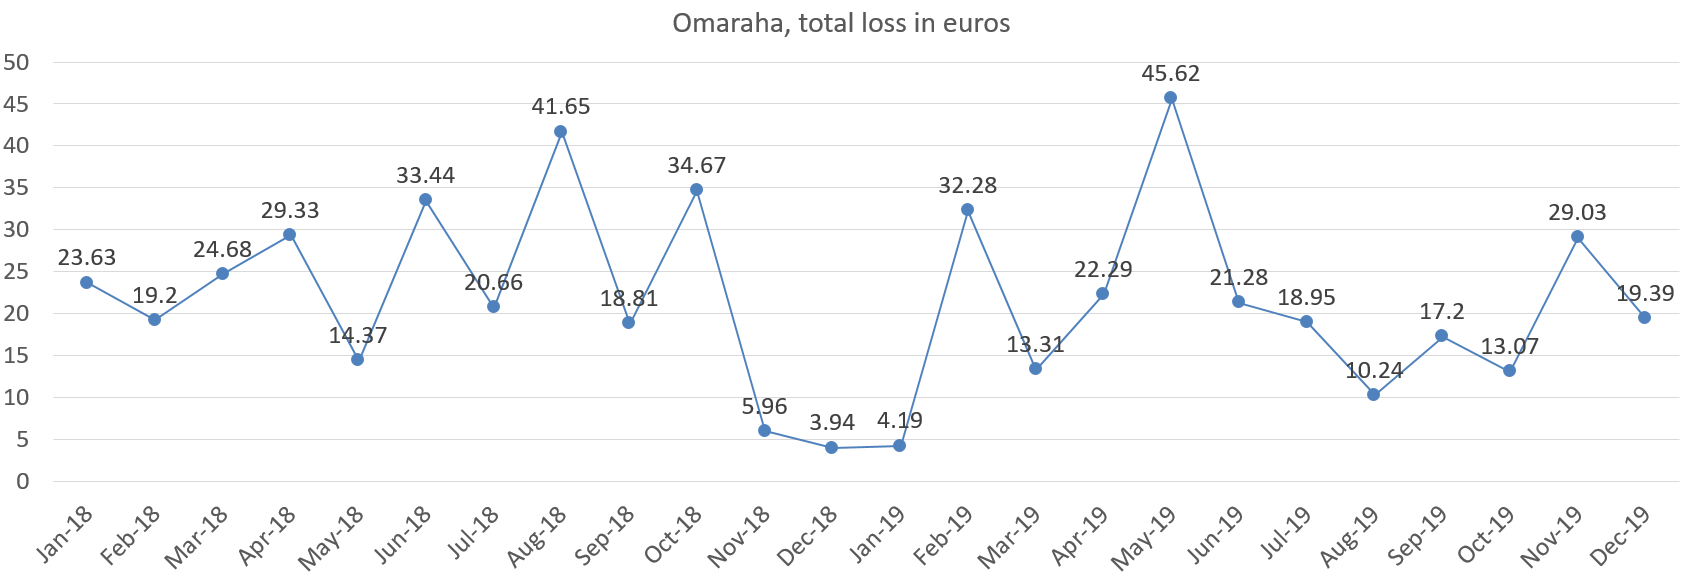 Omaraha total loss in euros, december 2019